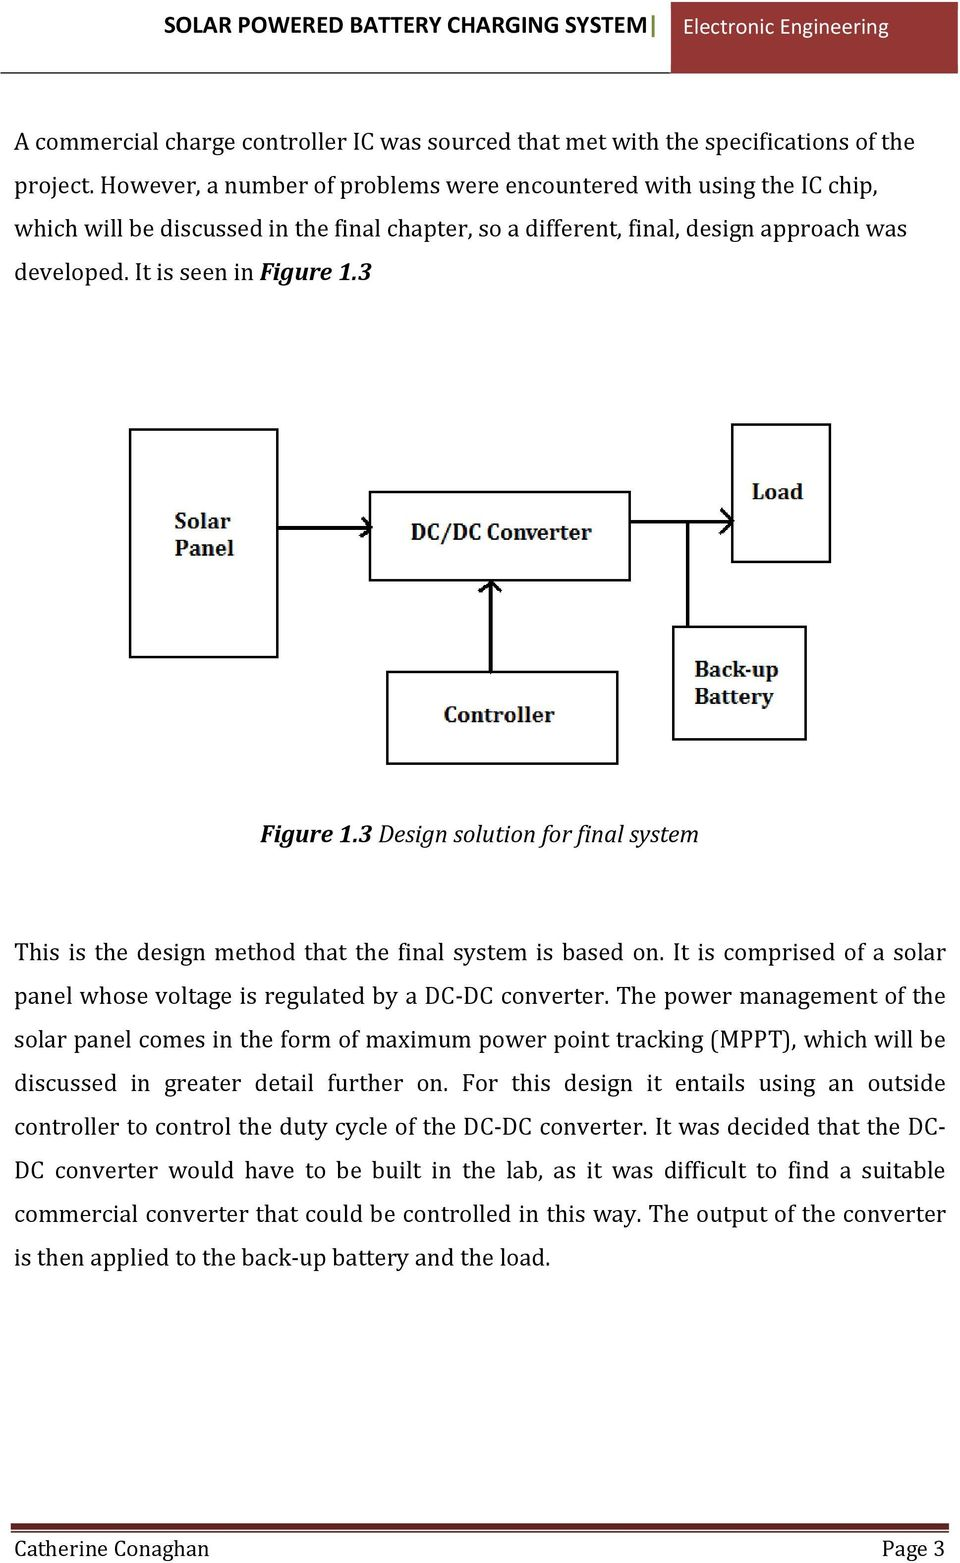 Solar Powered Battery Charging System Pdf Advanced Tutorials Wiring Diagrams For Energy Systems 3 Figure 13 Design Solution Final This Is The Method That